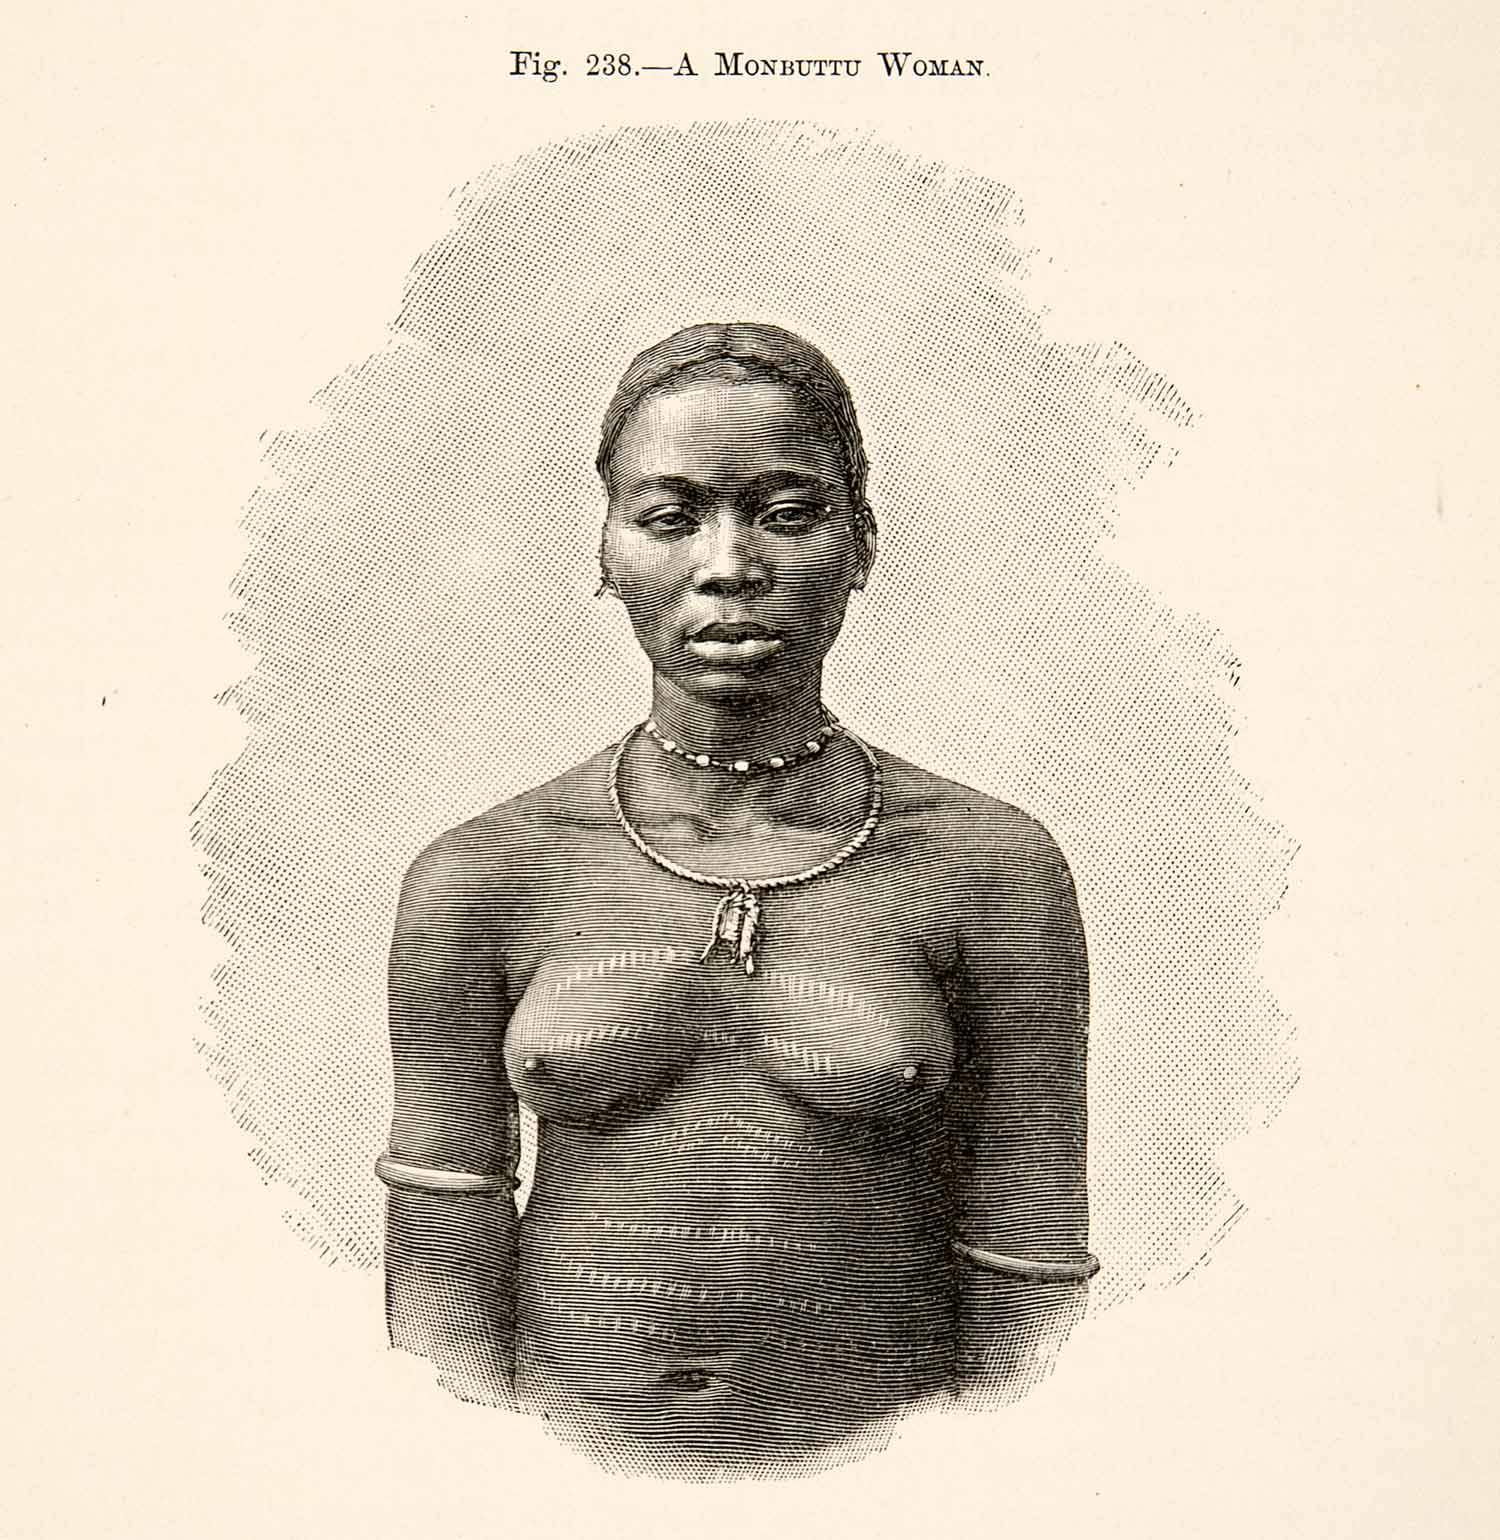 A young woman is traded into slavery